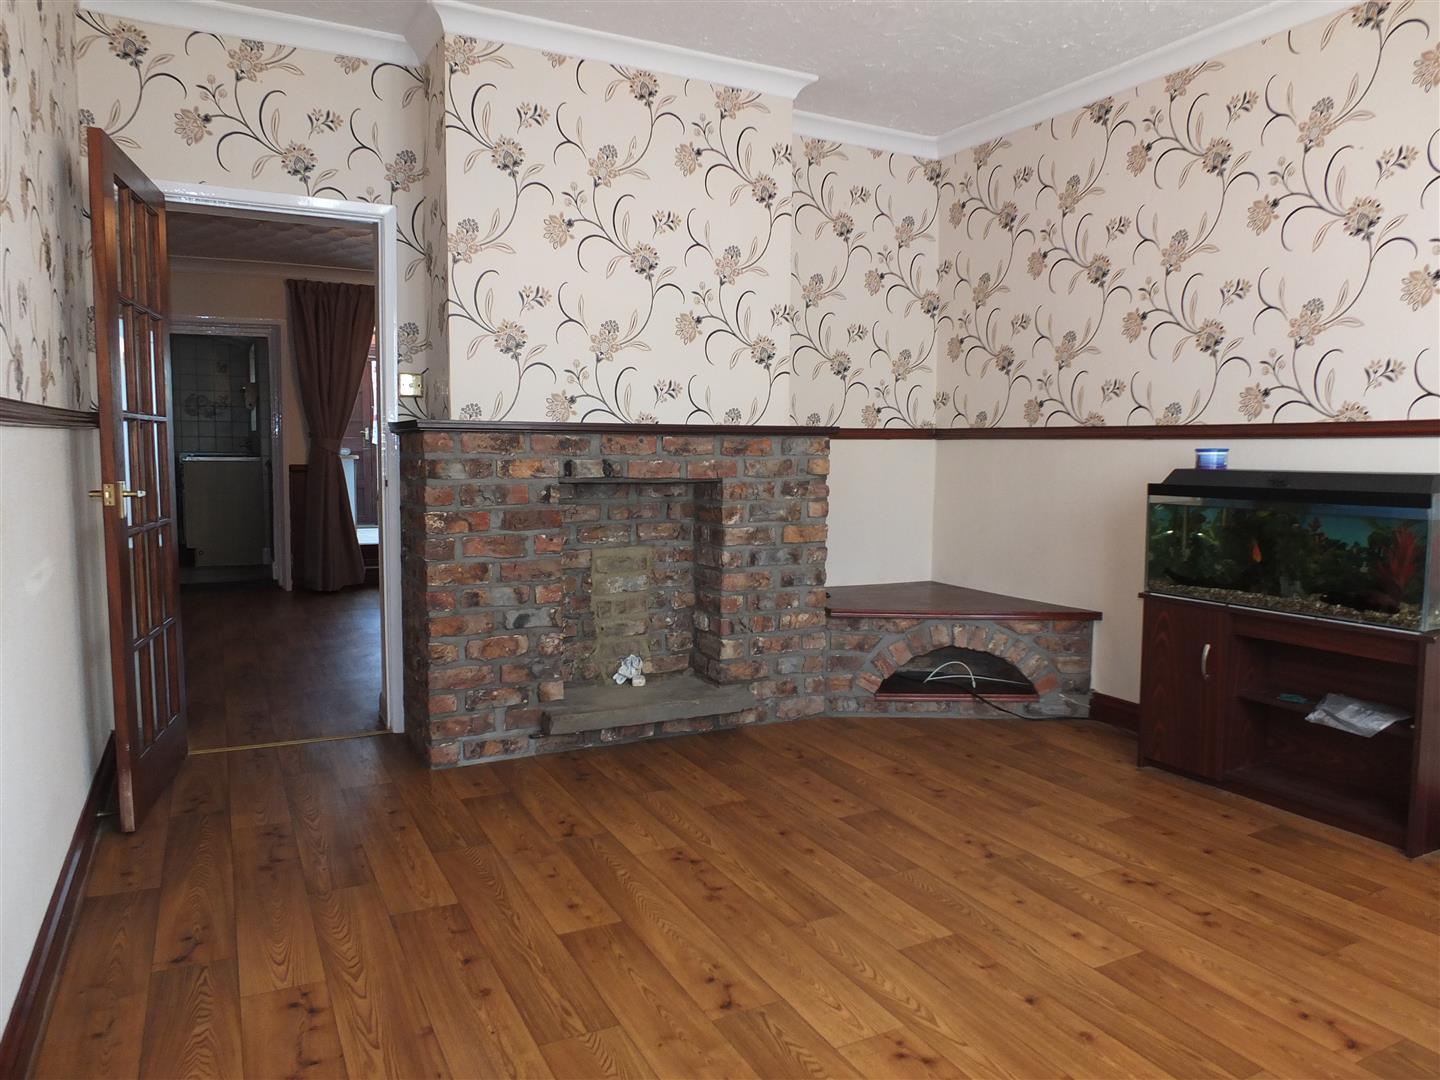 3 bed house to rent in Sutton Bridge Spalding, PE12 9UJ  - Property Image 2